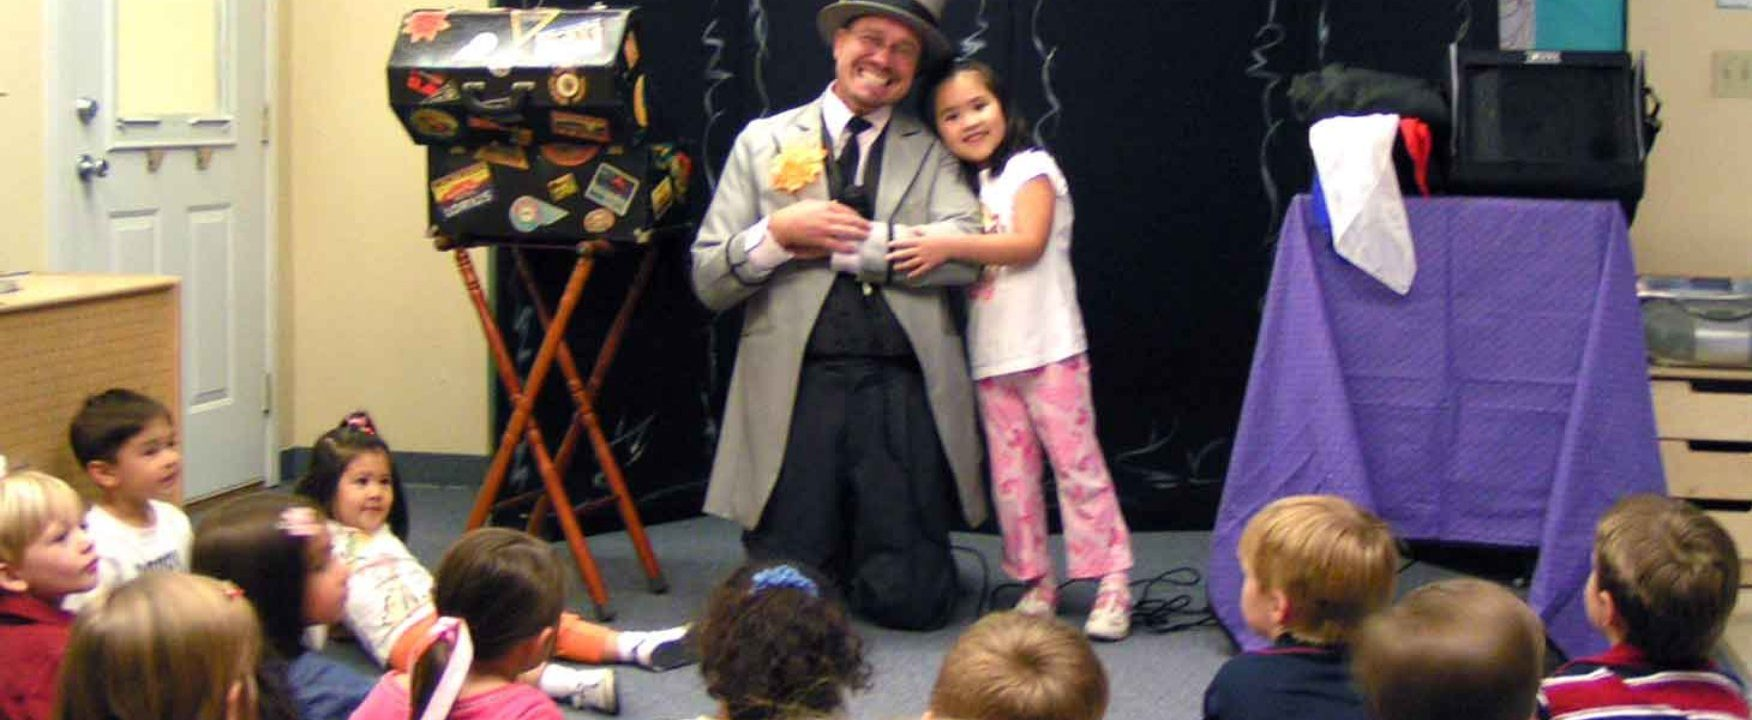 Good Magic Show Is Every Child's Dream